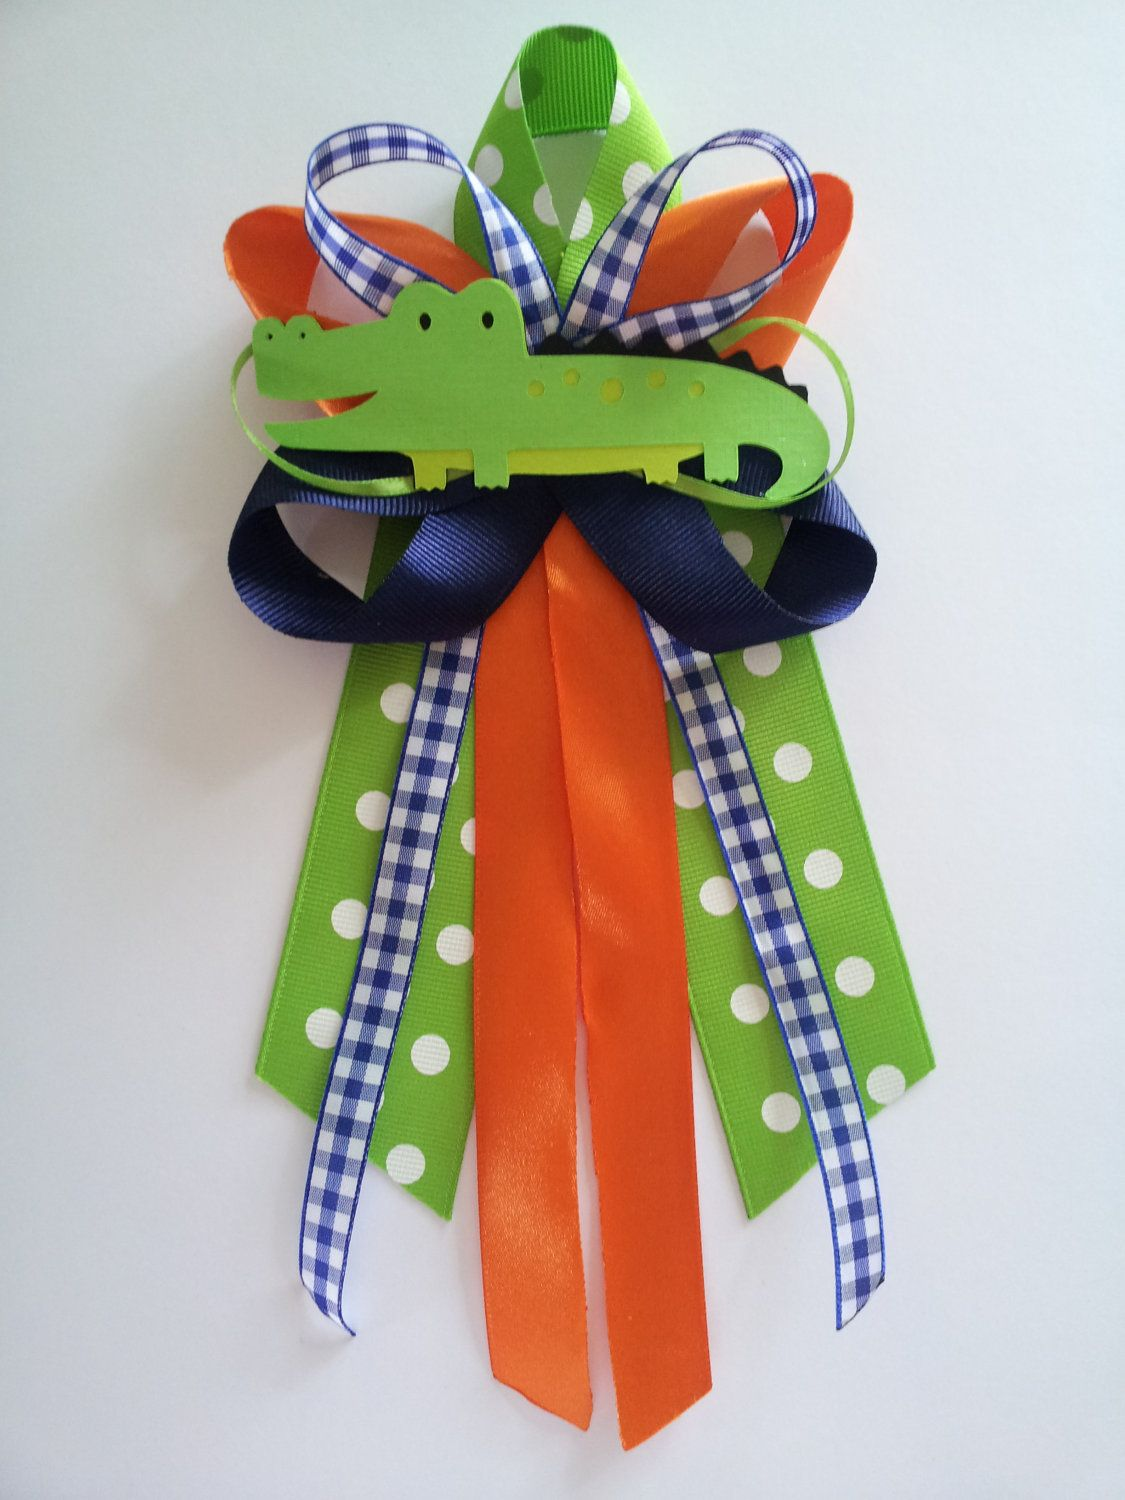 Pin By Astrid T On Precious Babies Alligator Baby Showers Baby Shower Gifts Baby Shower Corsage